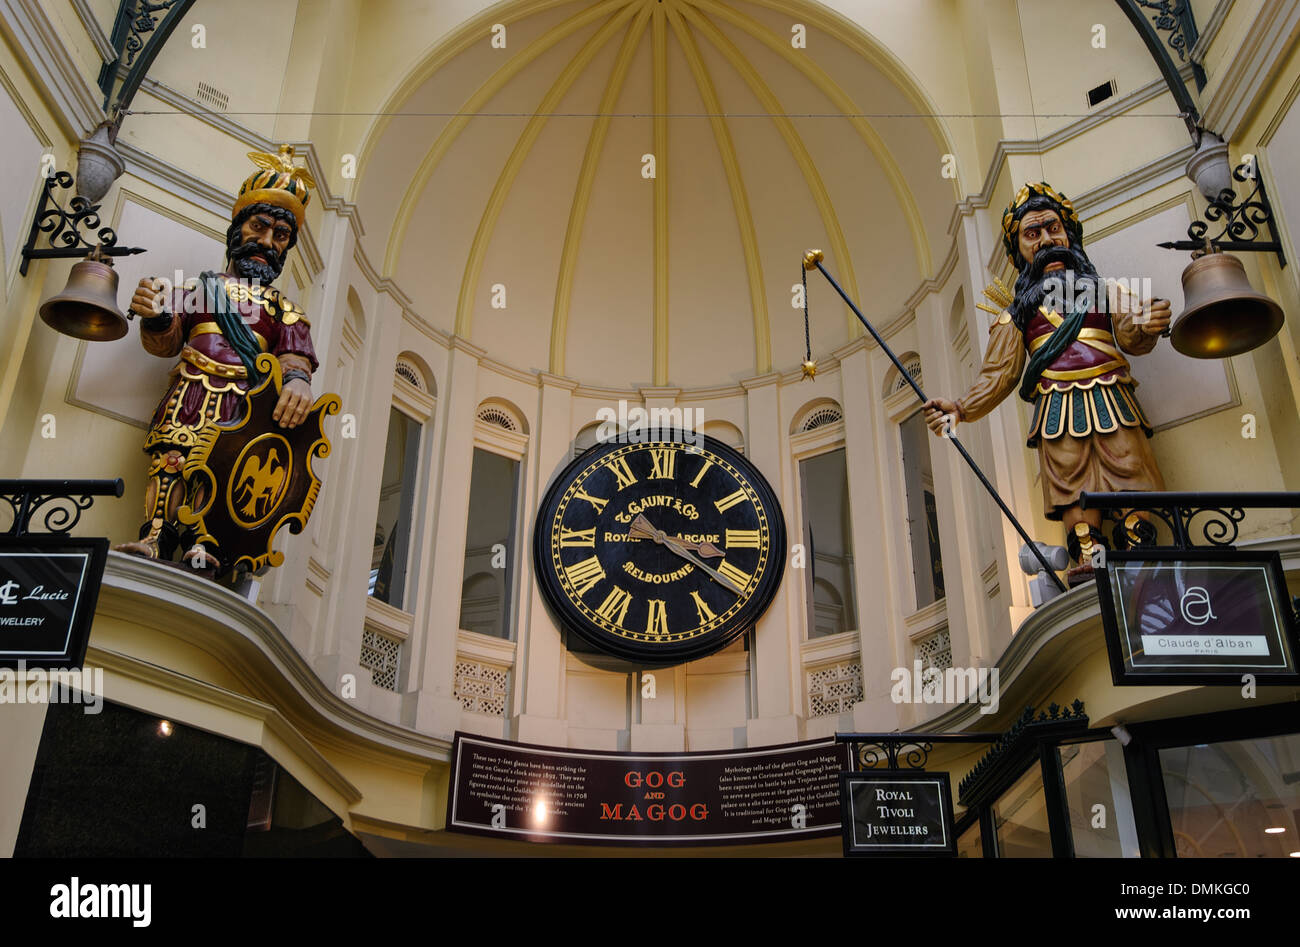 Statues of the mythical characters Gog and Magog in the Royal Arcade, Melbourne, Australia. - Stock Image